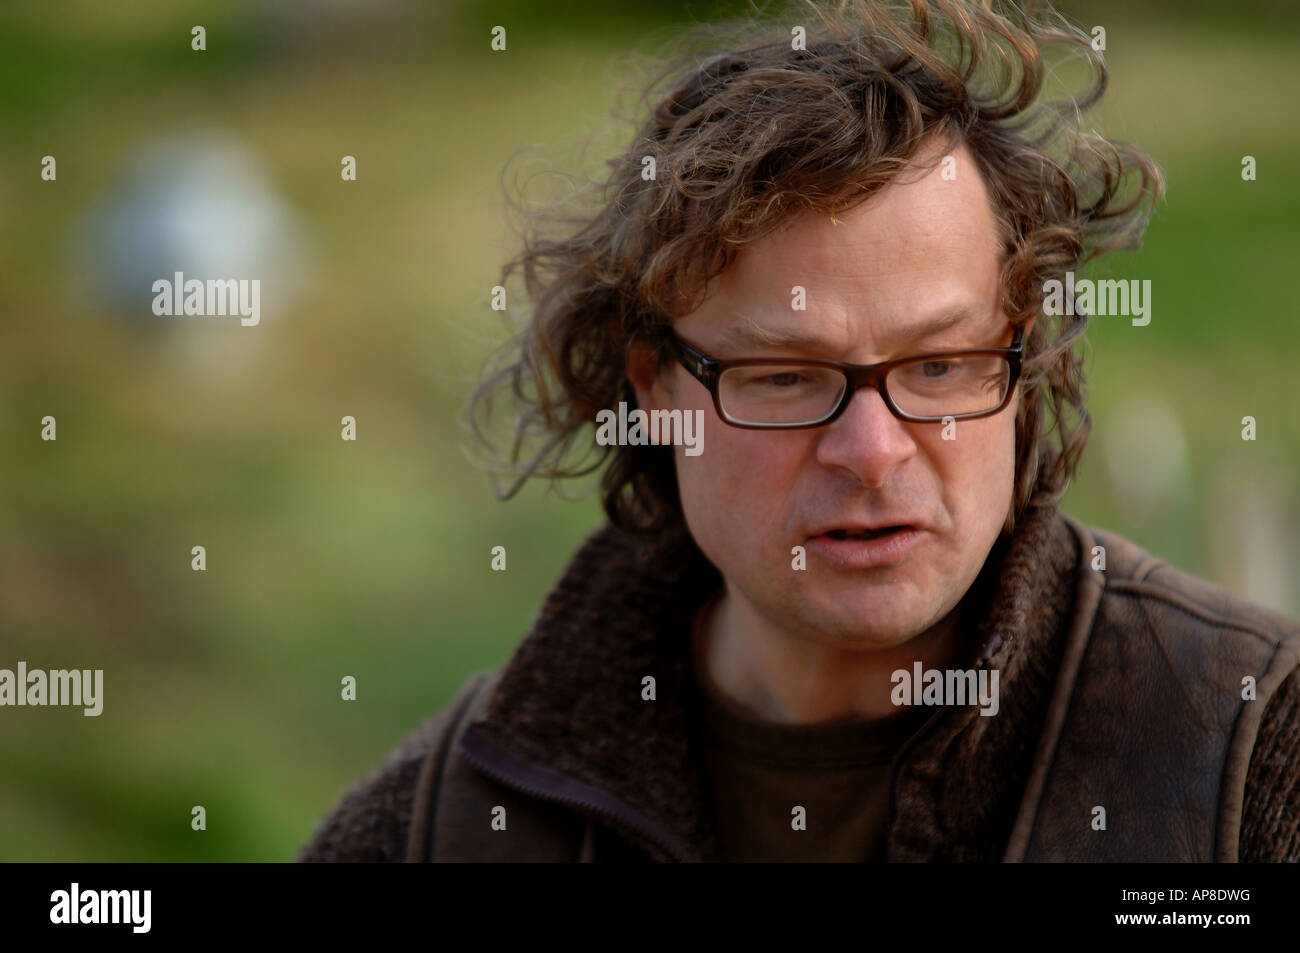 Hugh Fearnley Whittingstall pictured at Park Farm near Axminster Devon - Stock Image